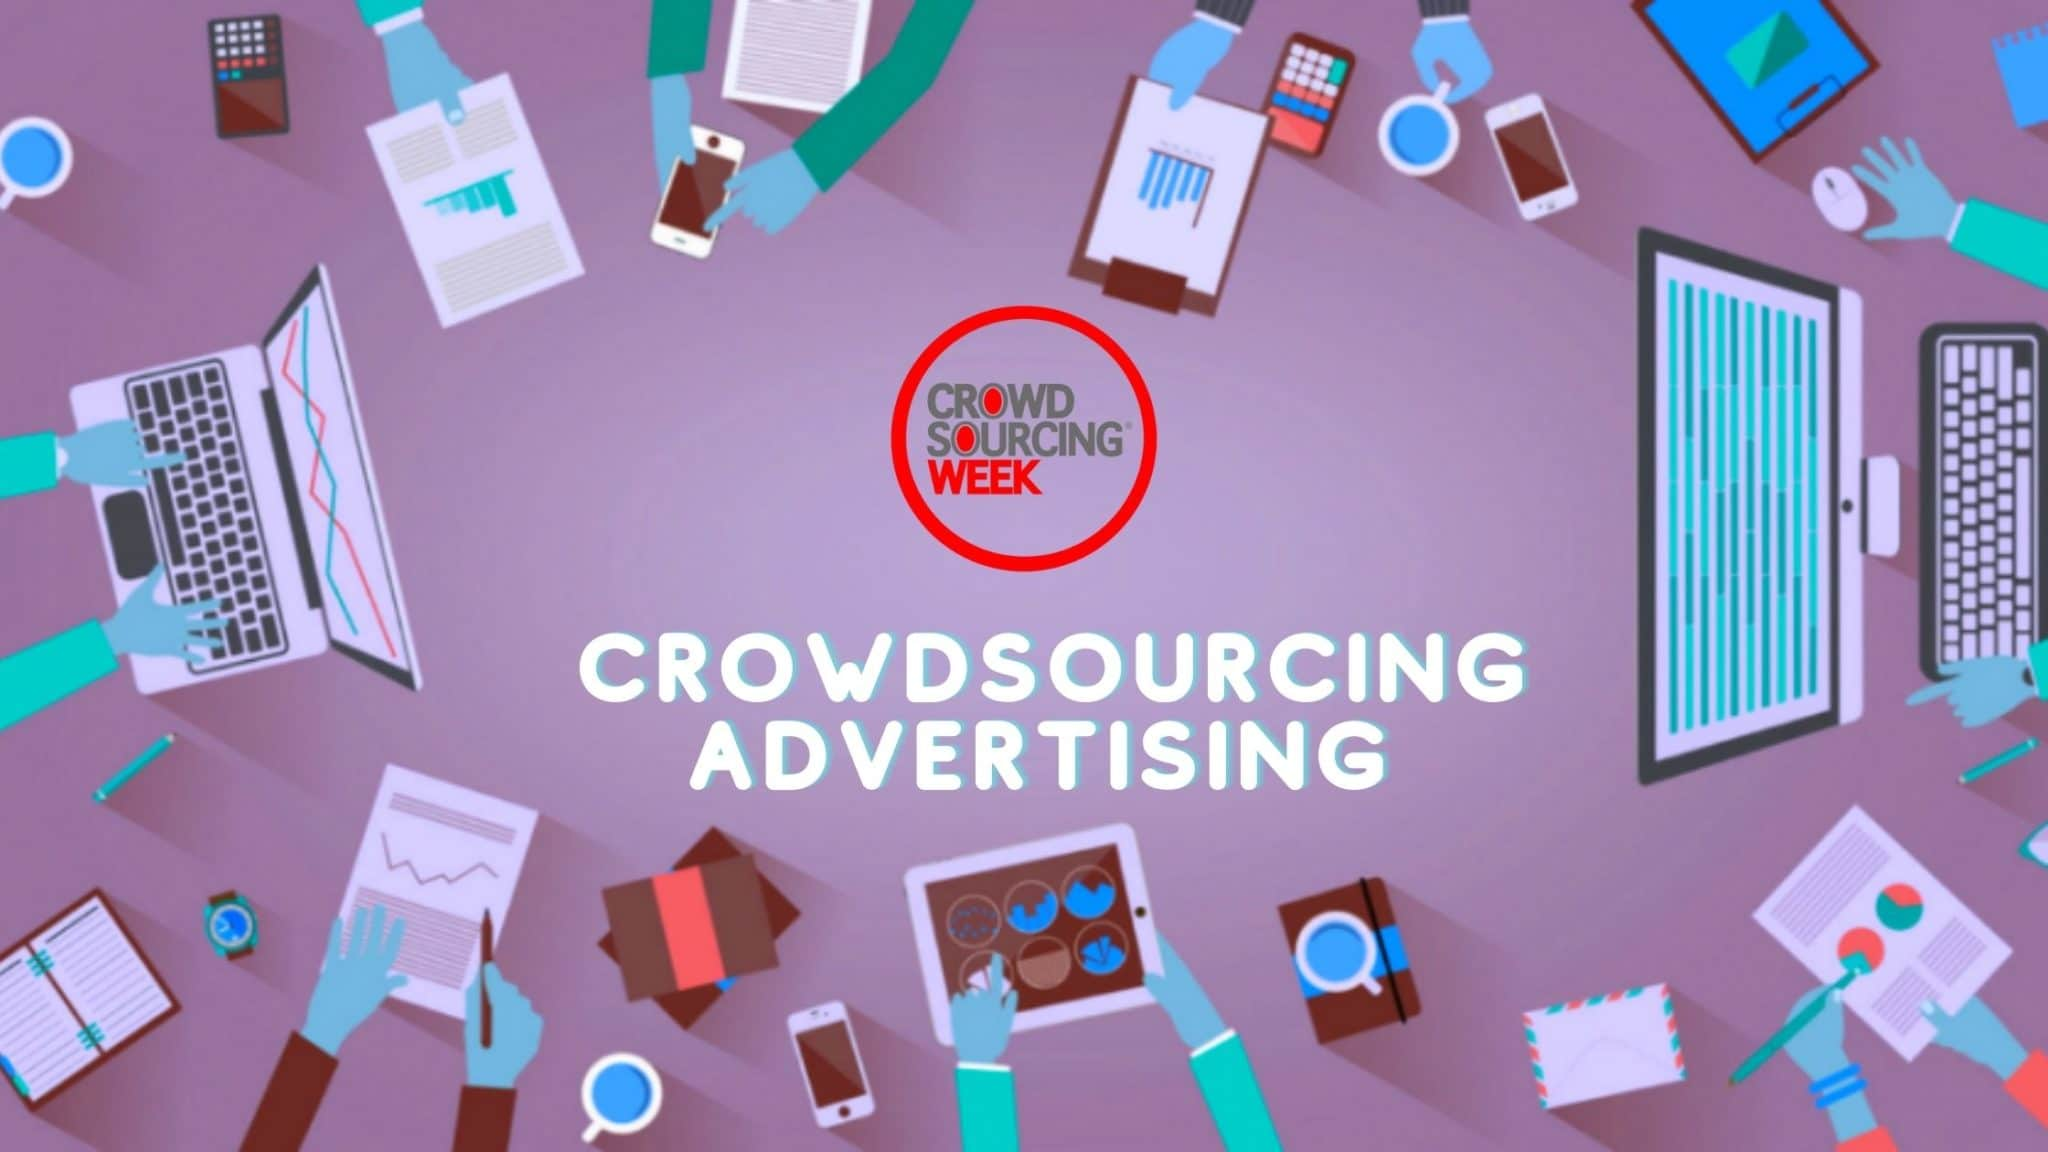 Crowdsourcing advertising content is changing Marketing Managers' roles